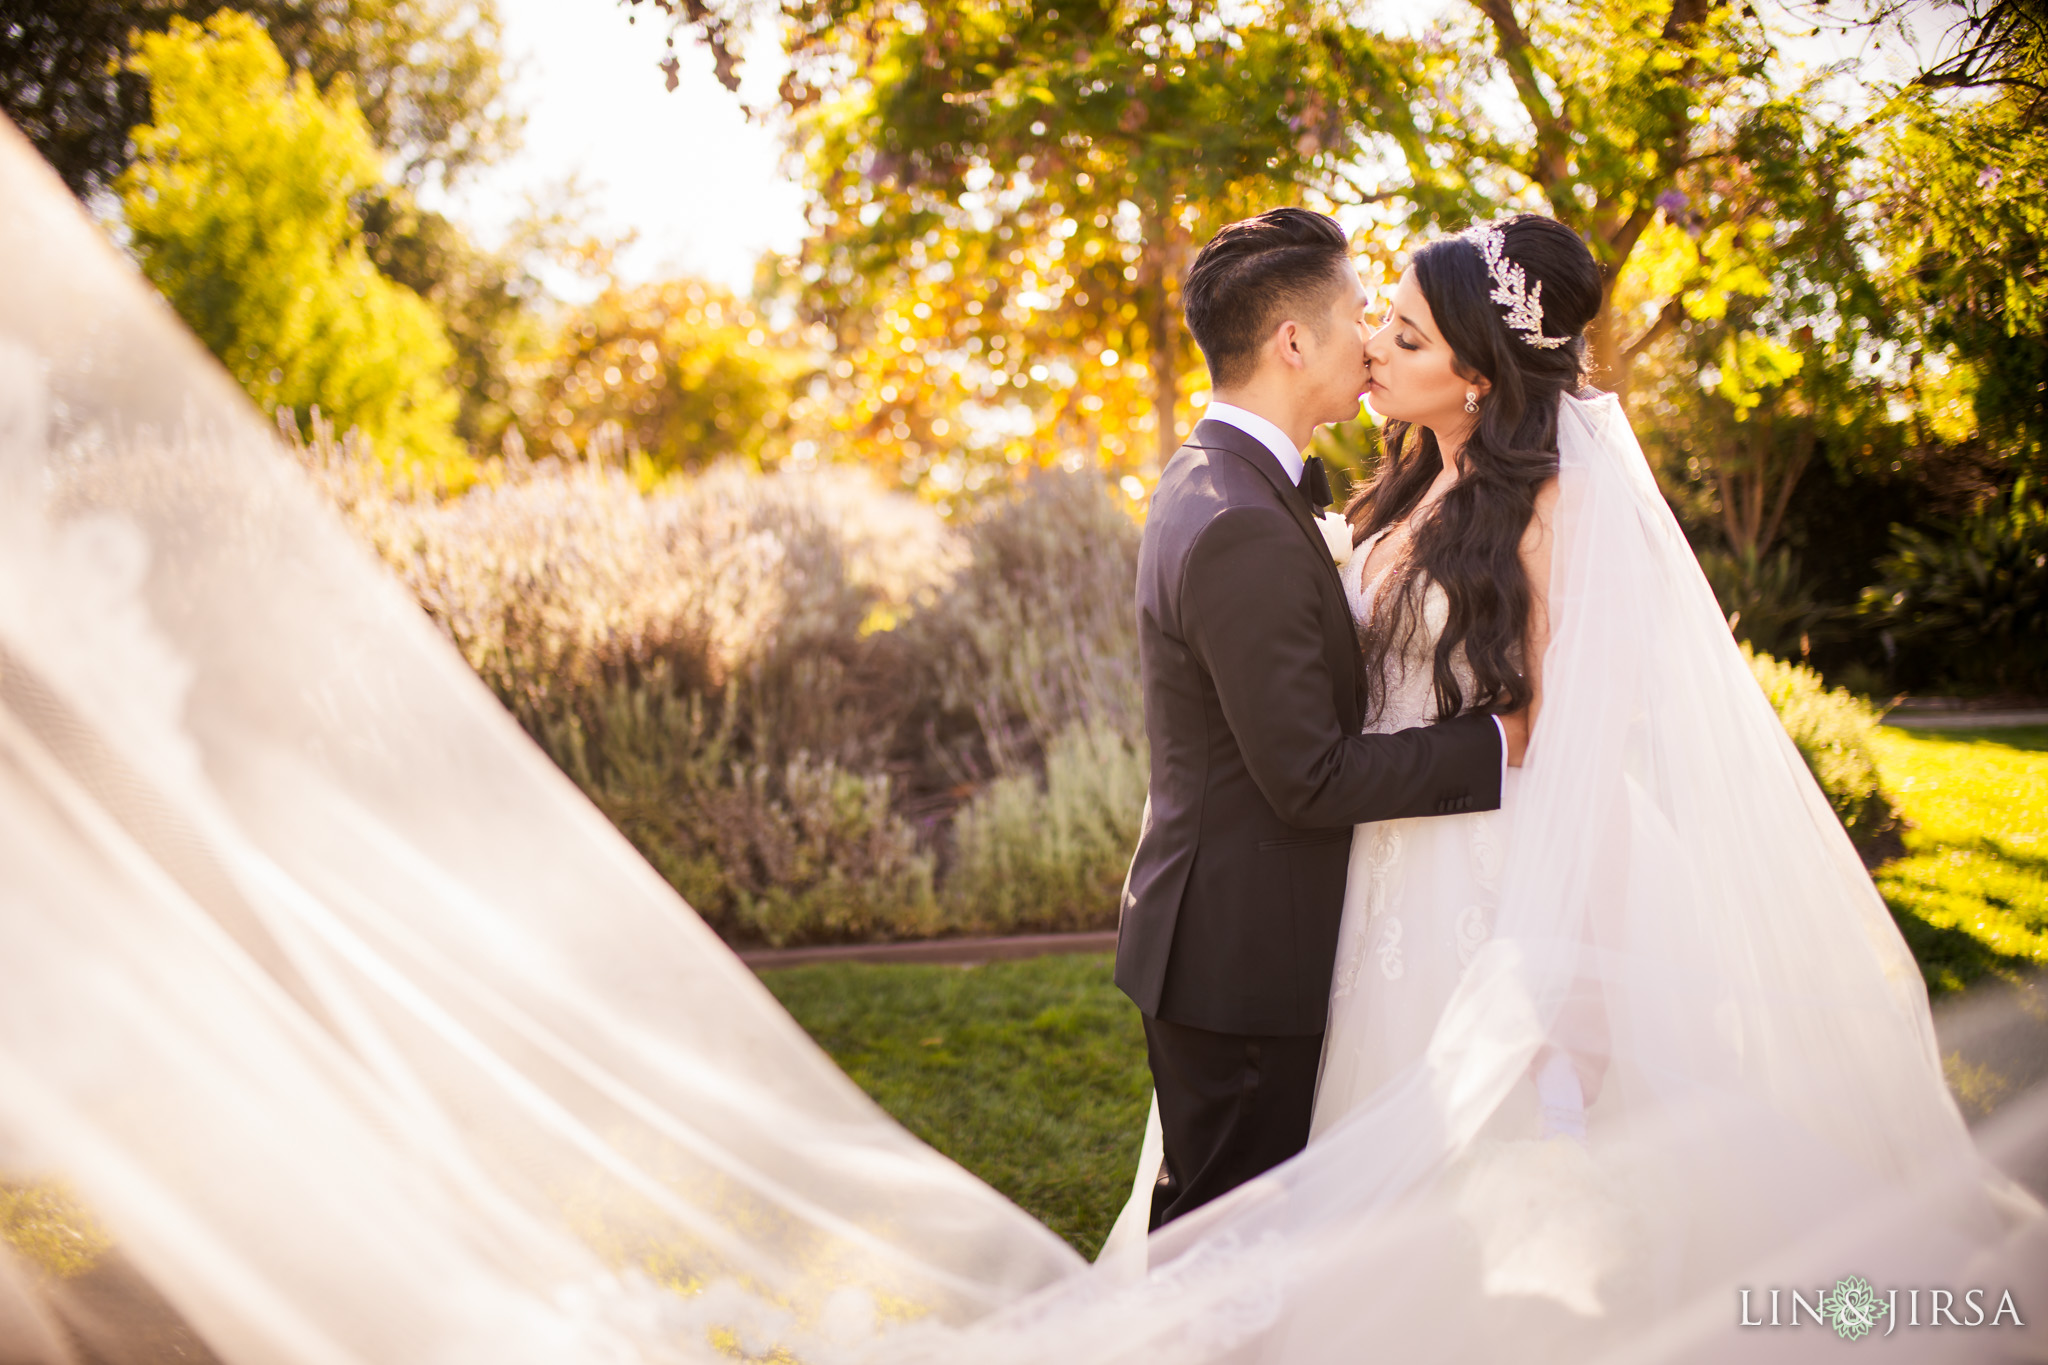 21 four seasons westlake village wedding photography